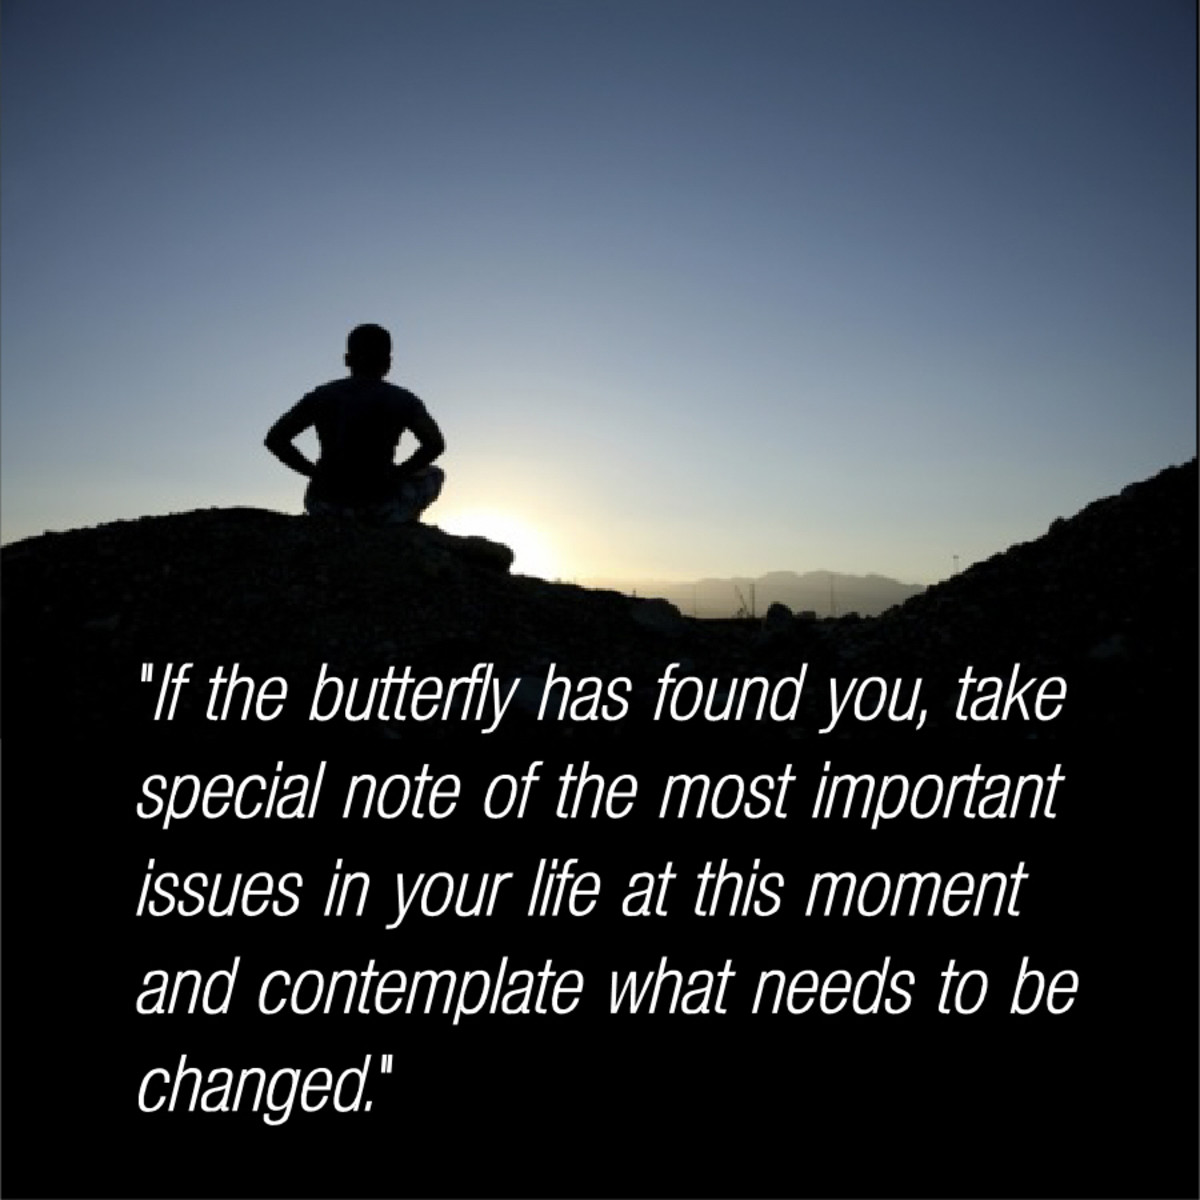 """Take special note of the issues in your life at this moment...."""